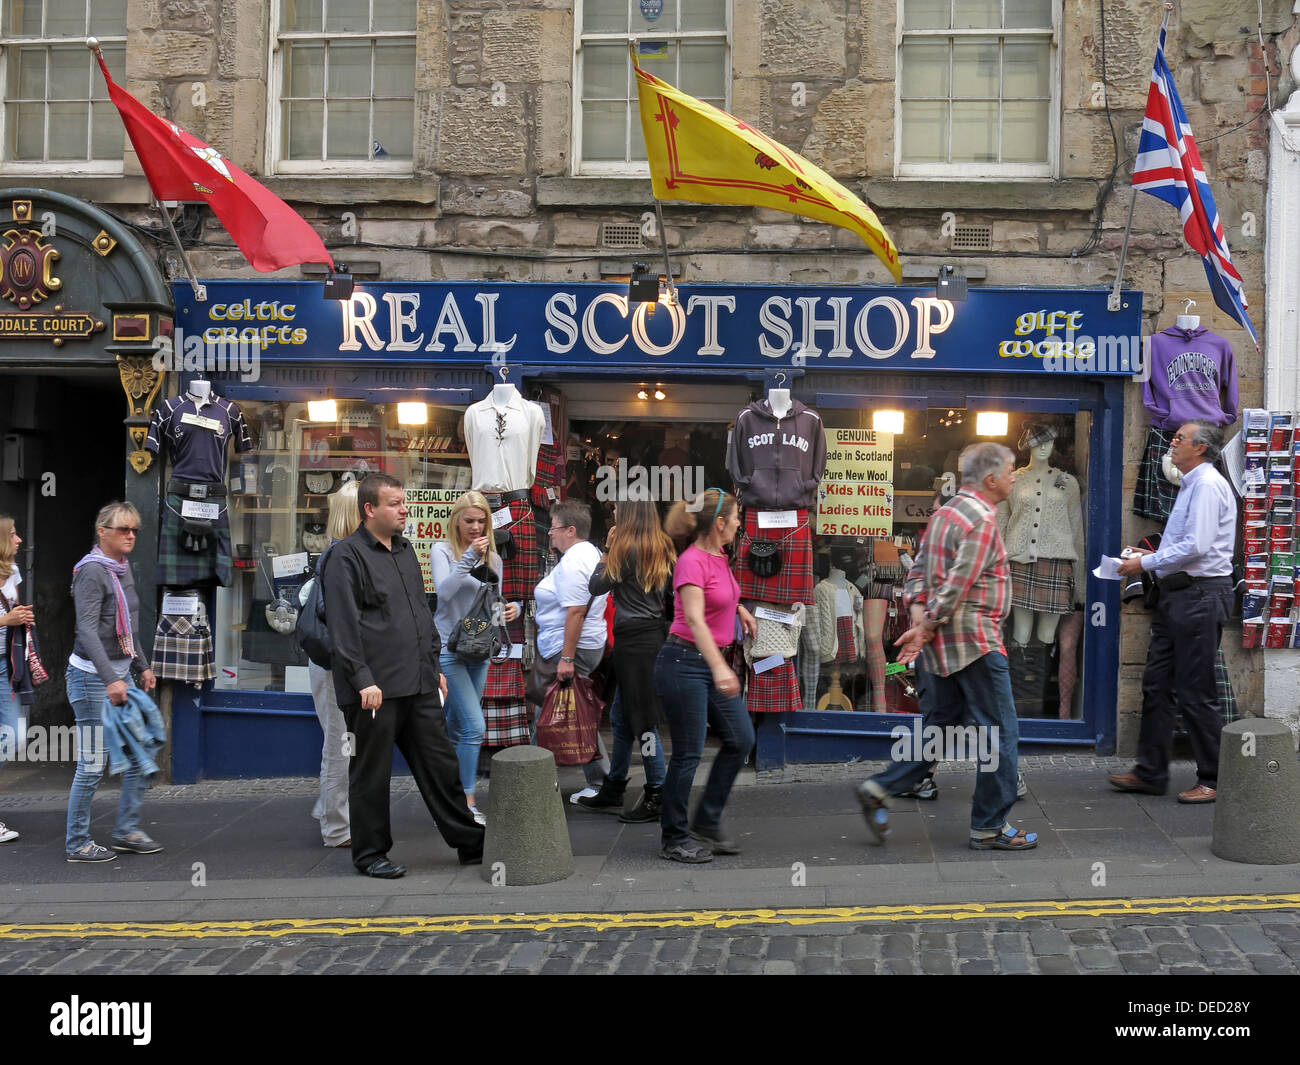 Celtic Crafts Real Scot Shop Royal Mile Edinburgh Scotland - Stock Image